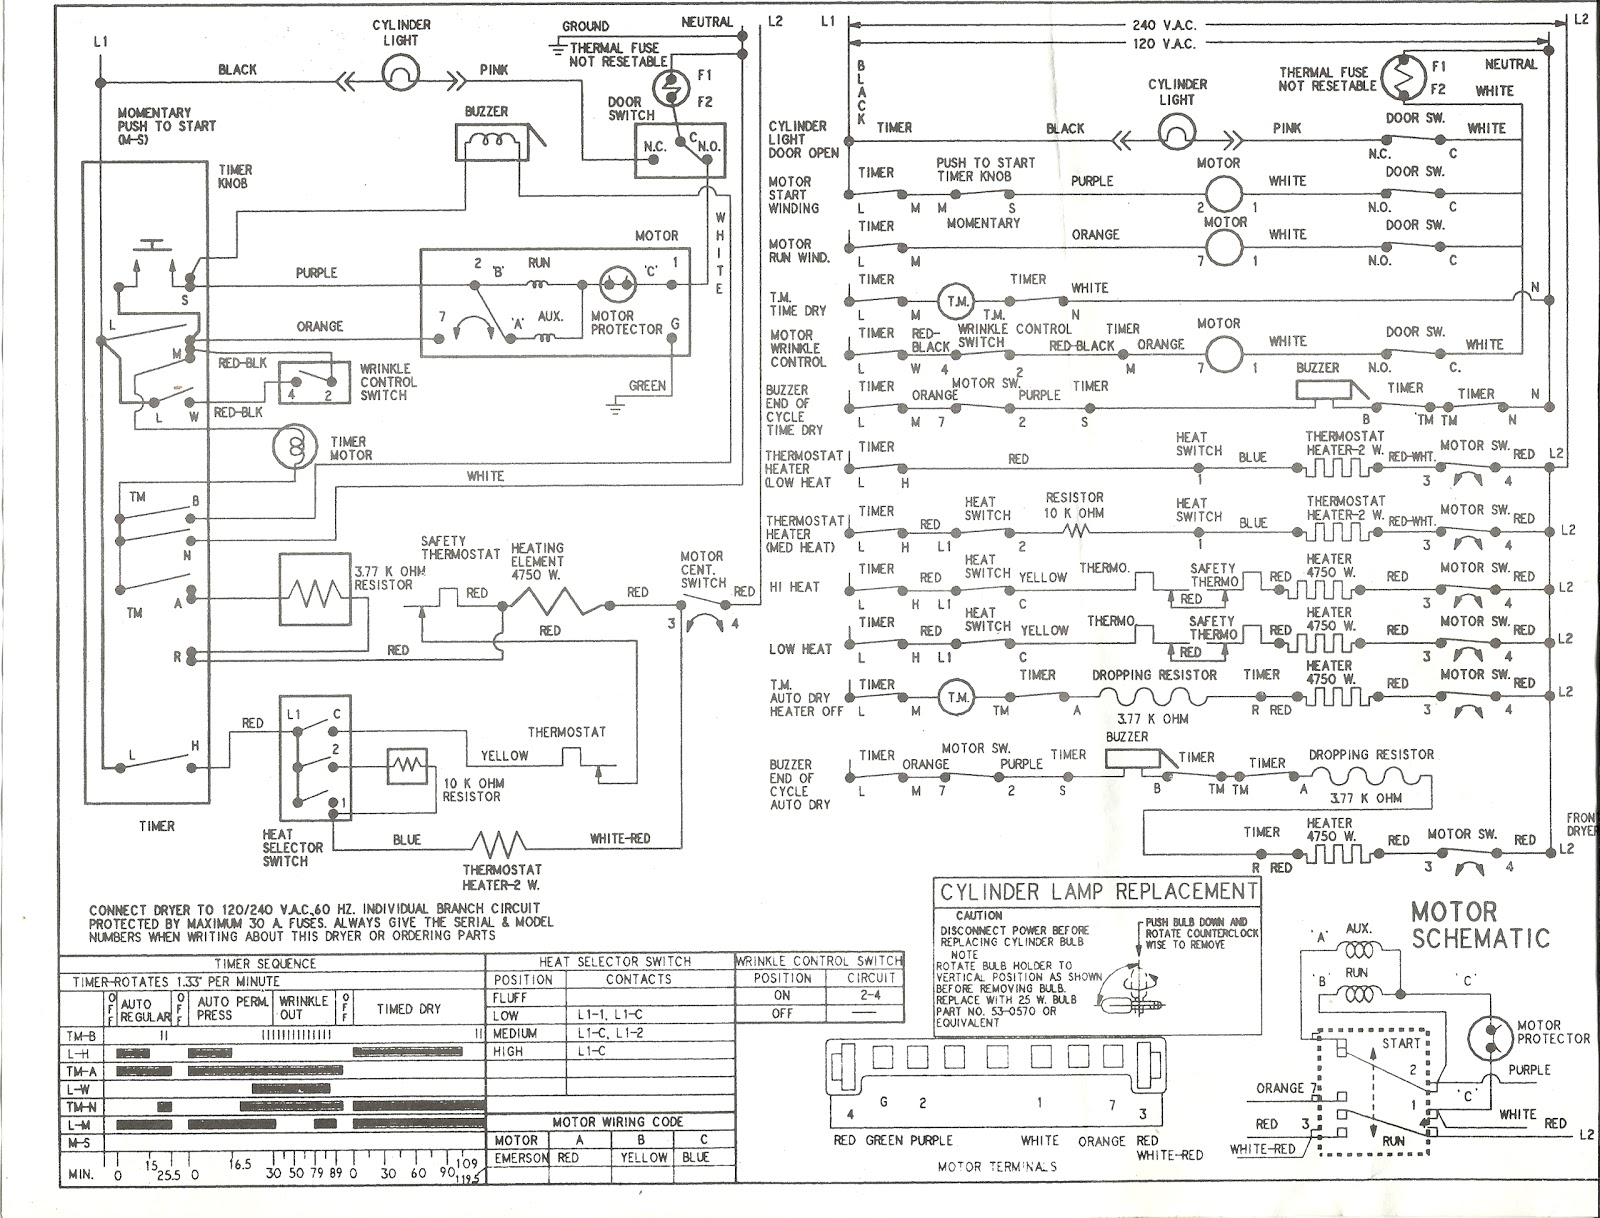 wiring schematic kenmore dryer wiring diagram options Kenmore Model 110 Diagram